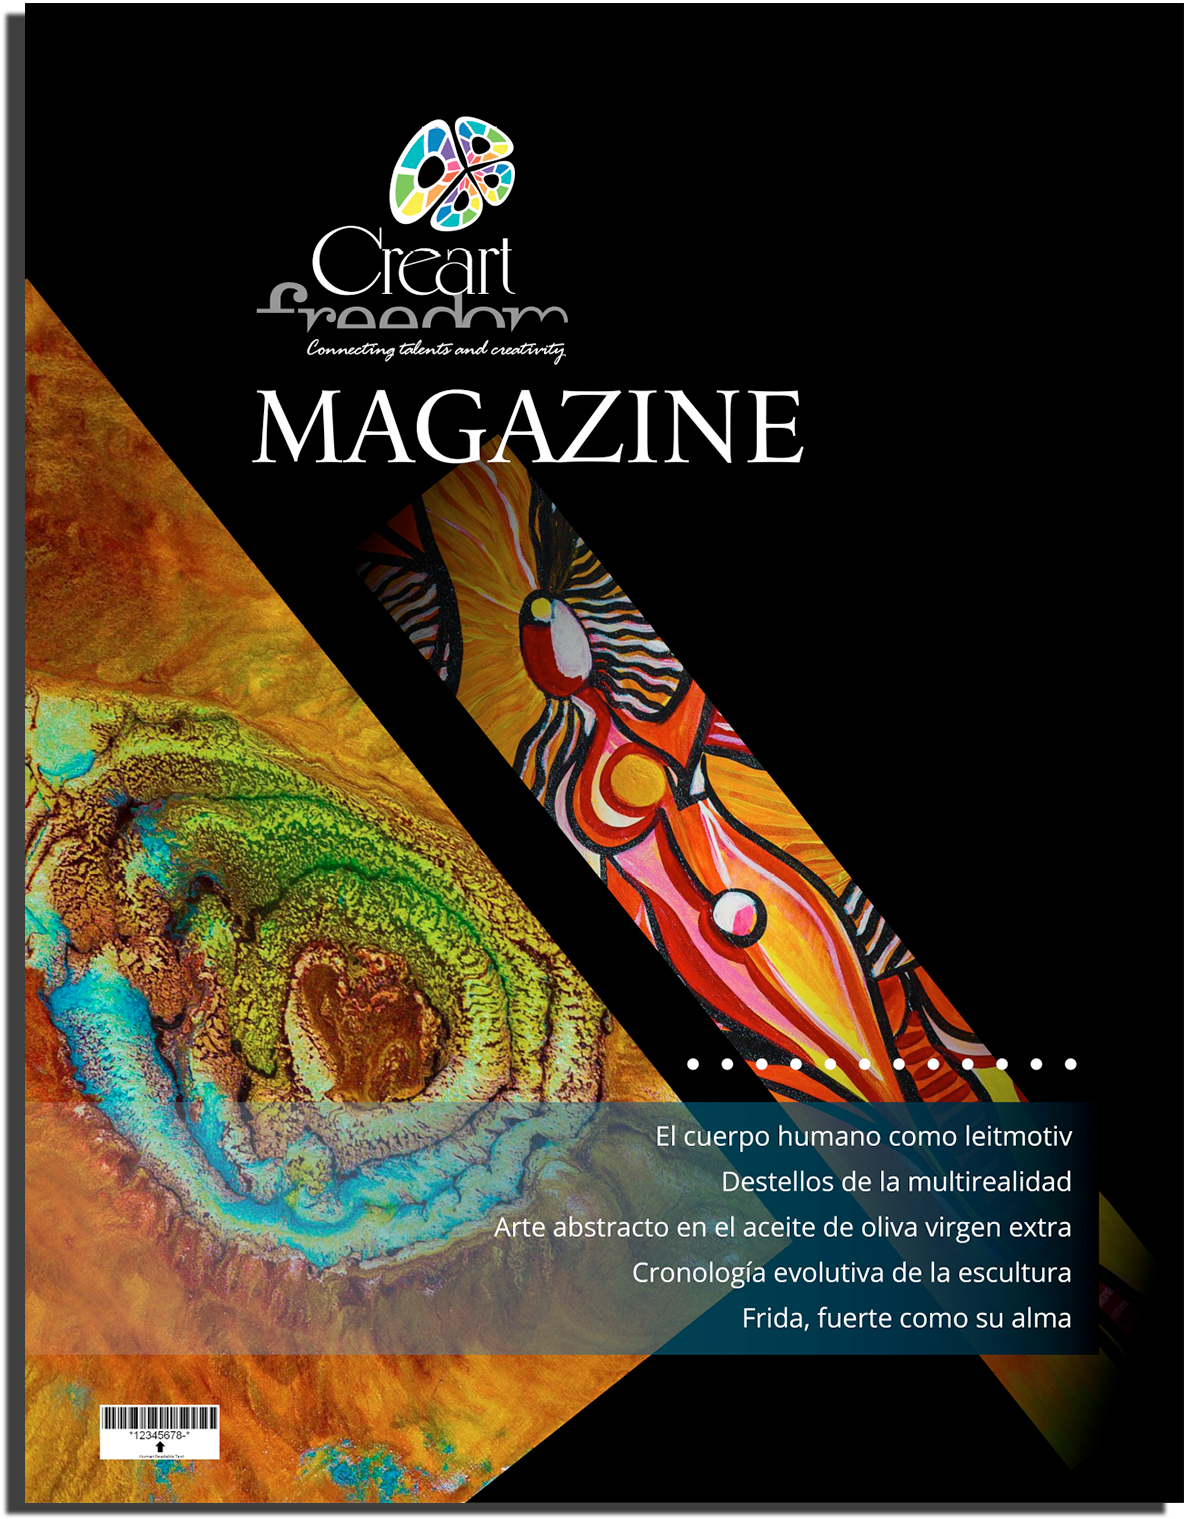 MAGAZINE OCTOBER 2018. Fascicle 0